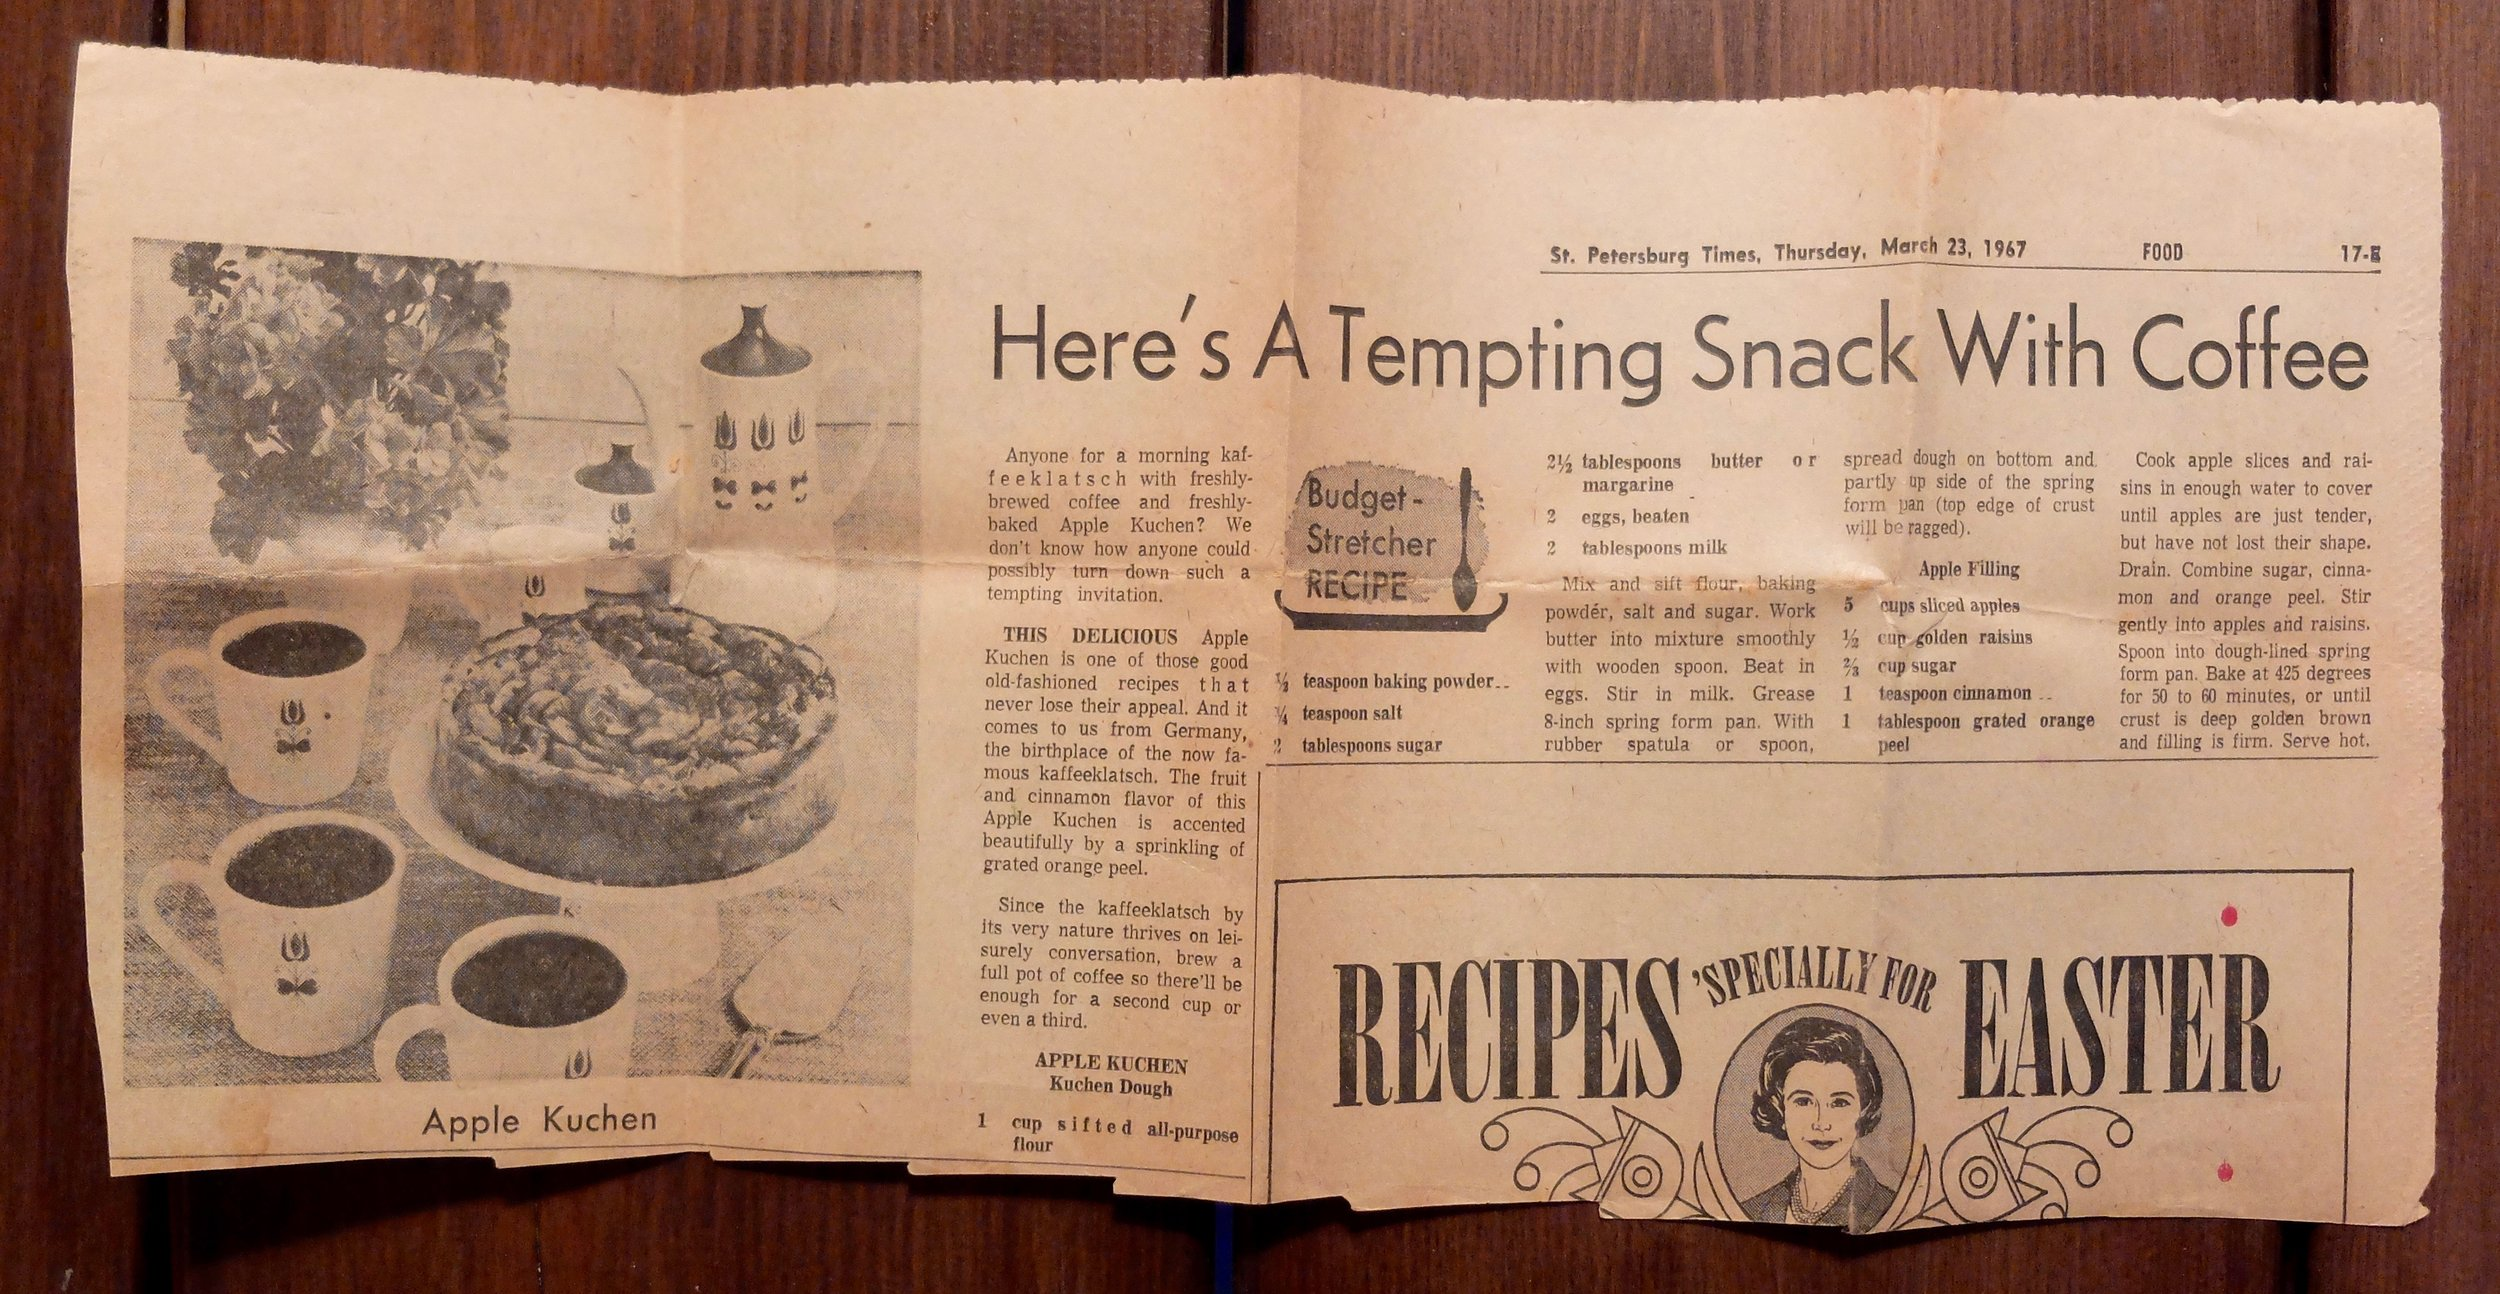 After making a Load of newspaper recipes from this box, it's a little embarrassing how fast i was able to identify the woman on the bottom right as Betty crocker.